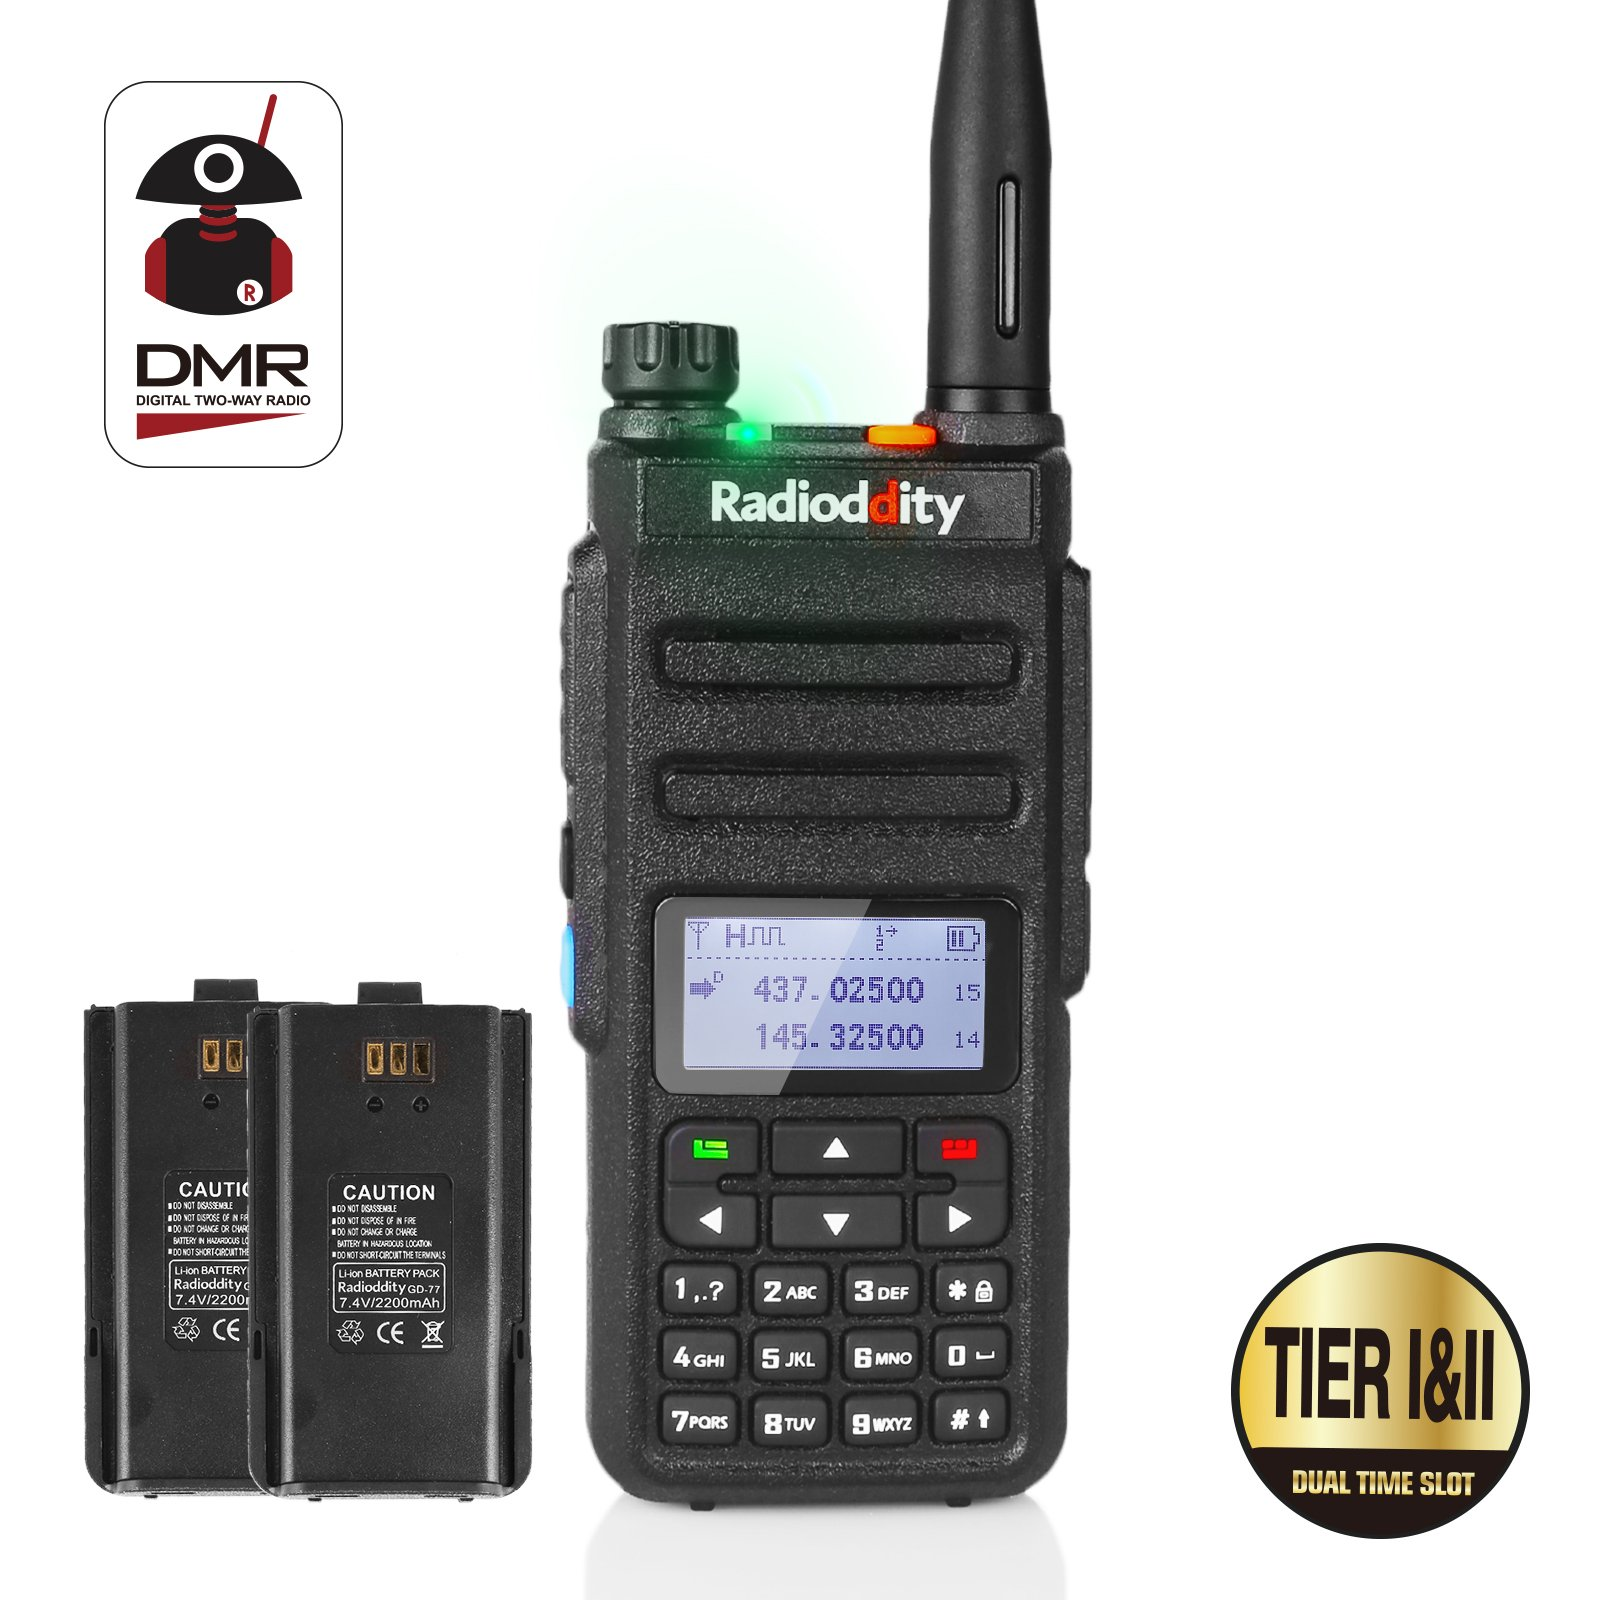 Radioddity GD-77 Dual Band Dual Time Slot DMR Digital / Analog Two Way Radio 136-174 /400-470MHz 1024 Channels Ham Amateur Radio Compatible with MOTOTRBO, Free Programming Cable and Extra Battery